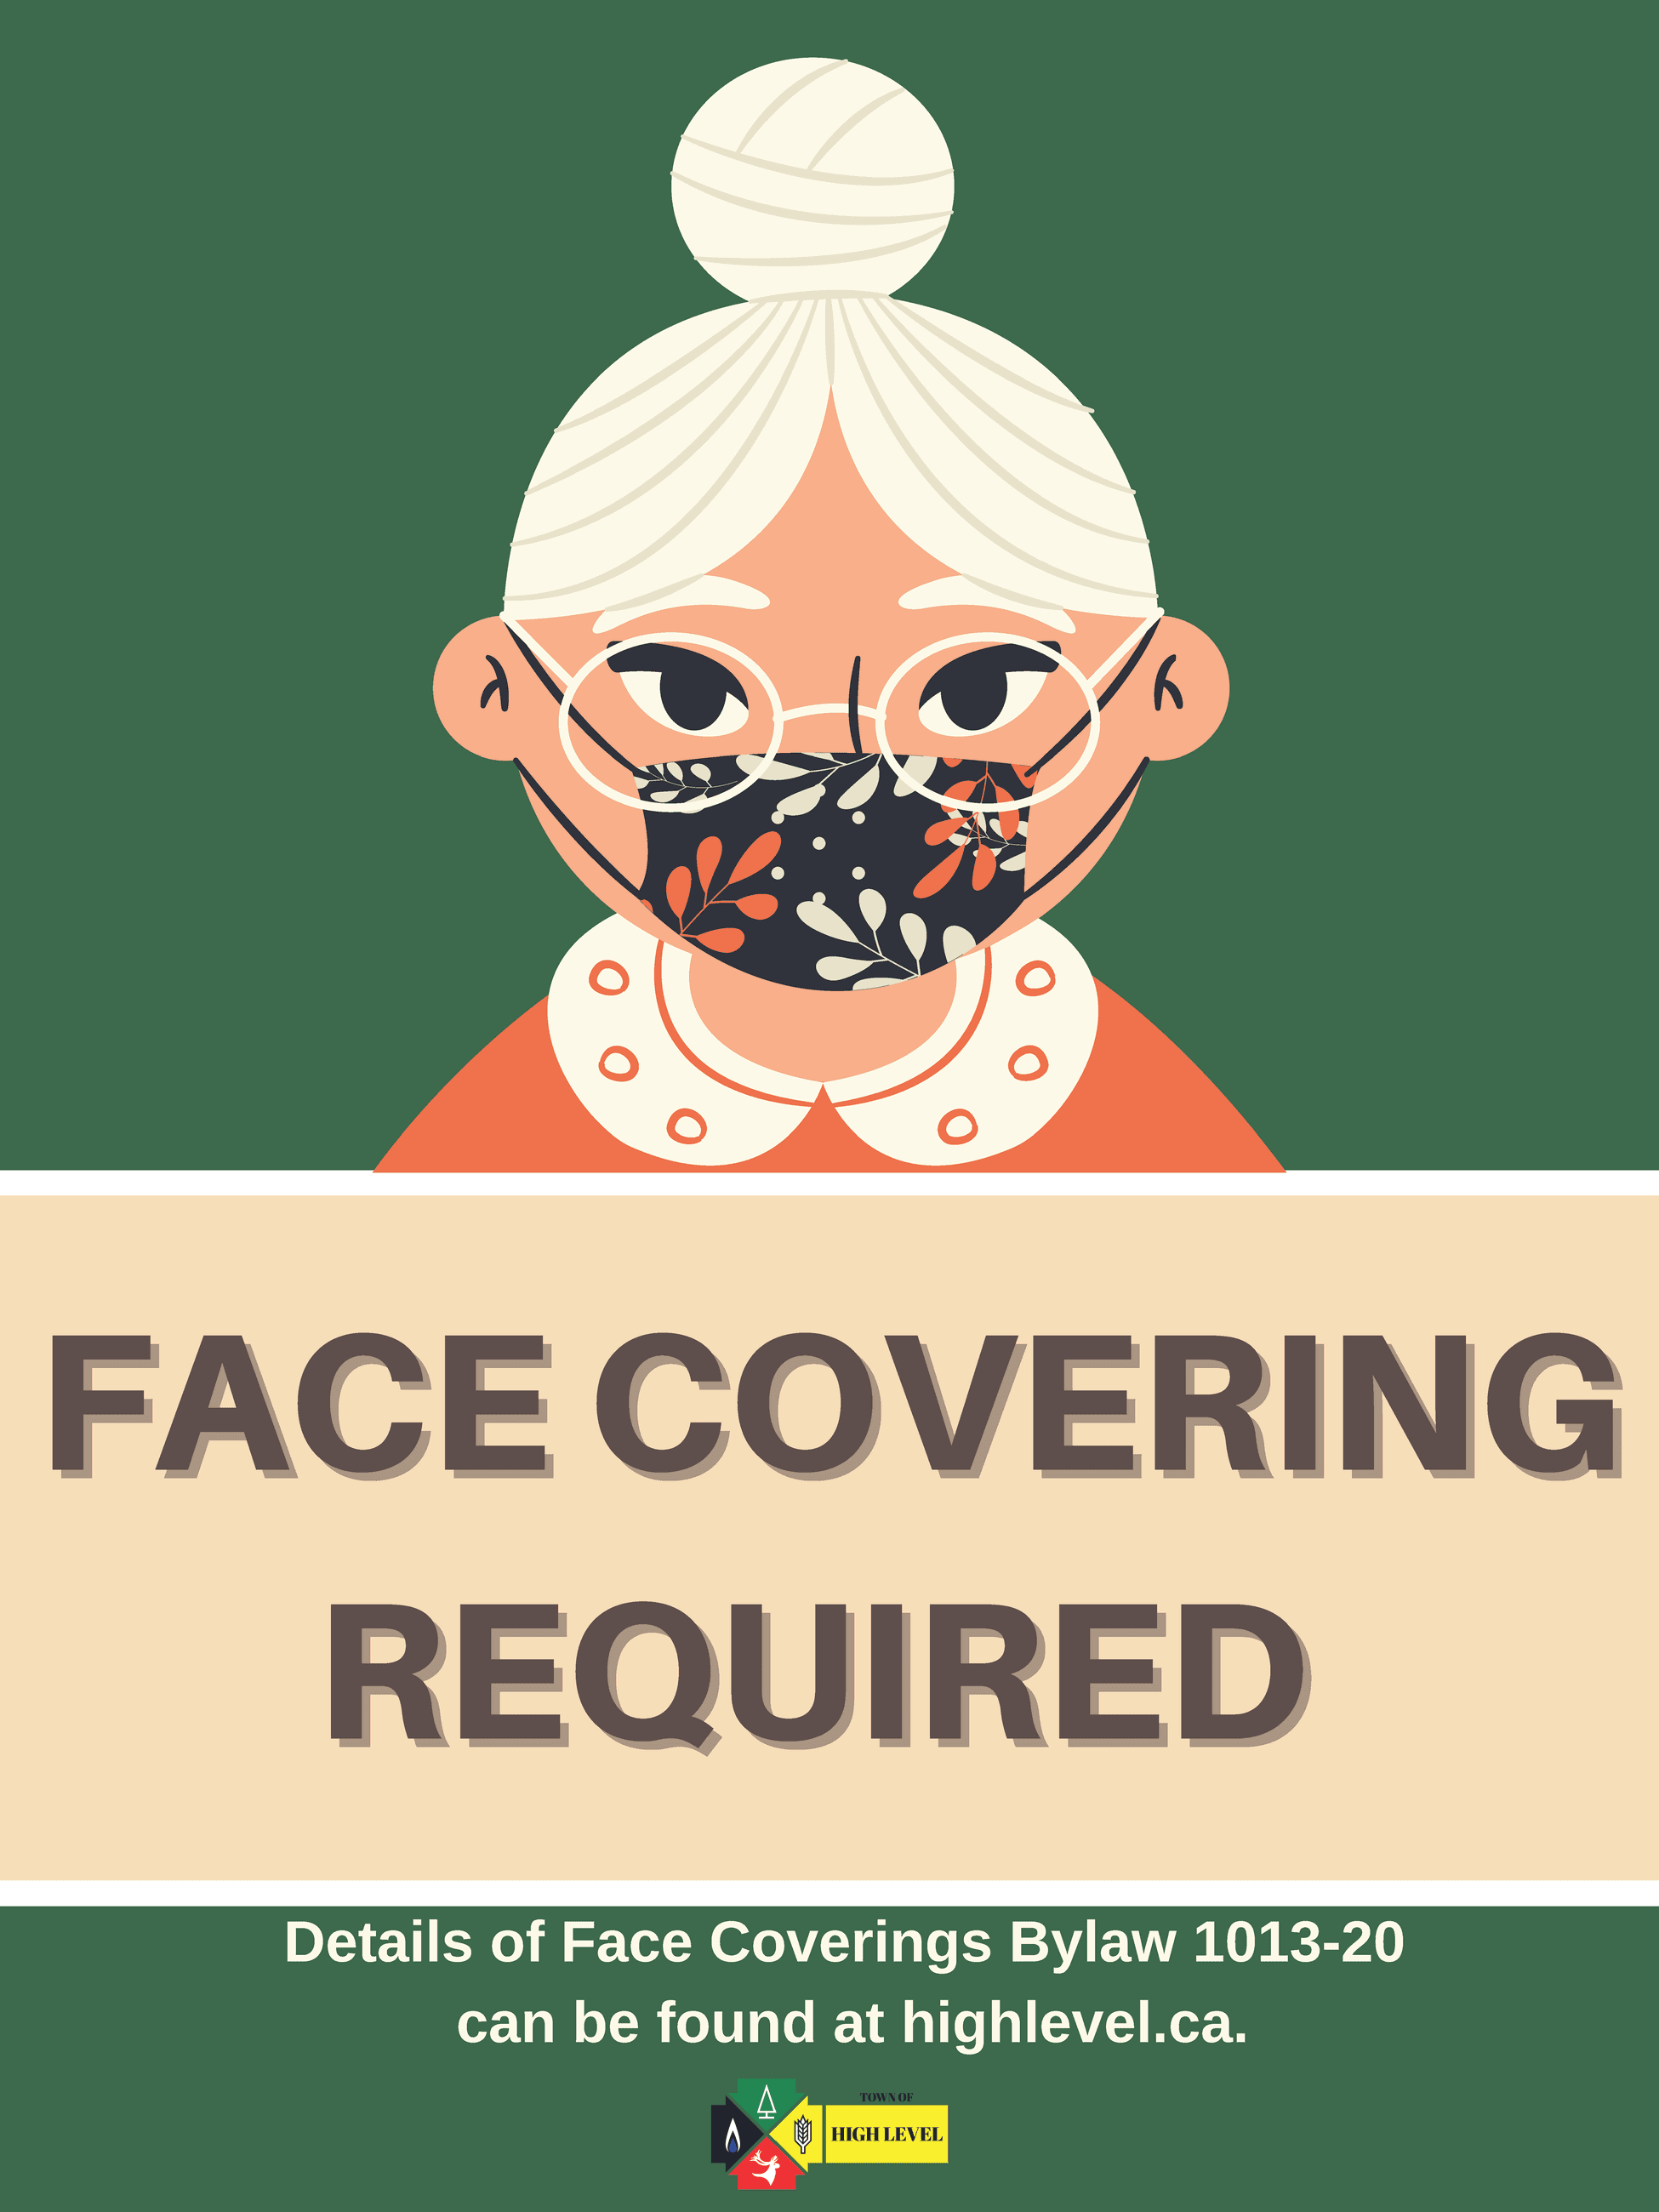 Face Coverings SIGN Opens in new window